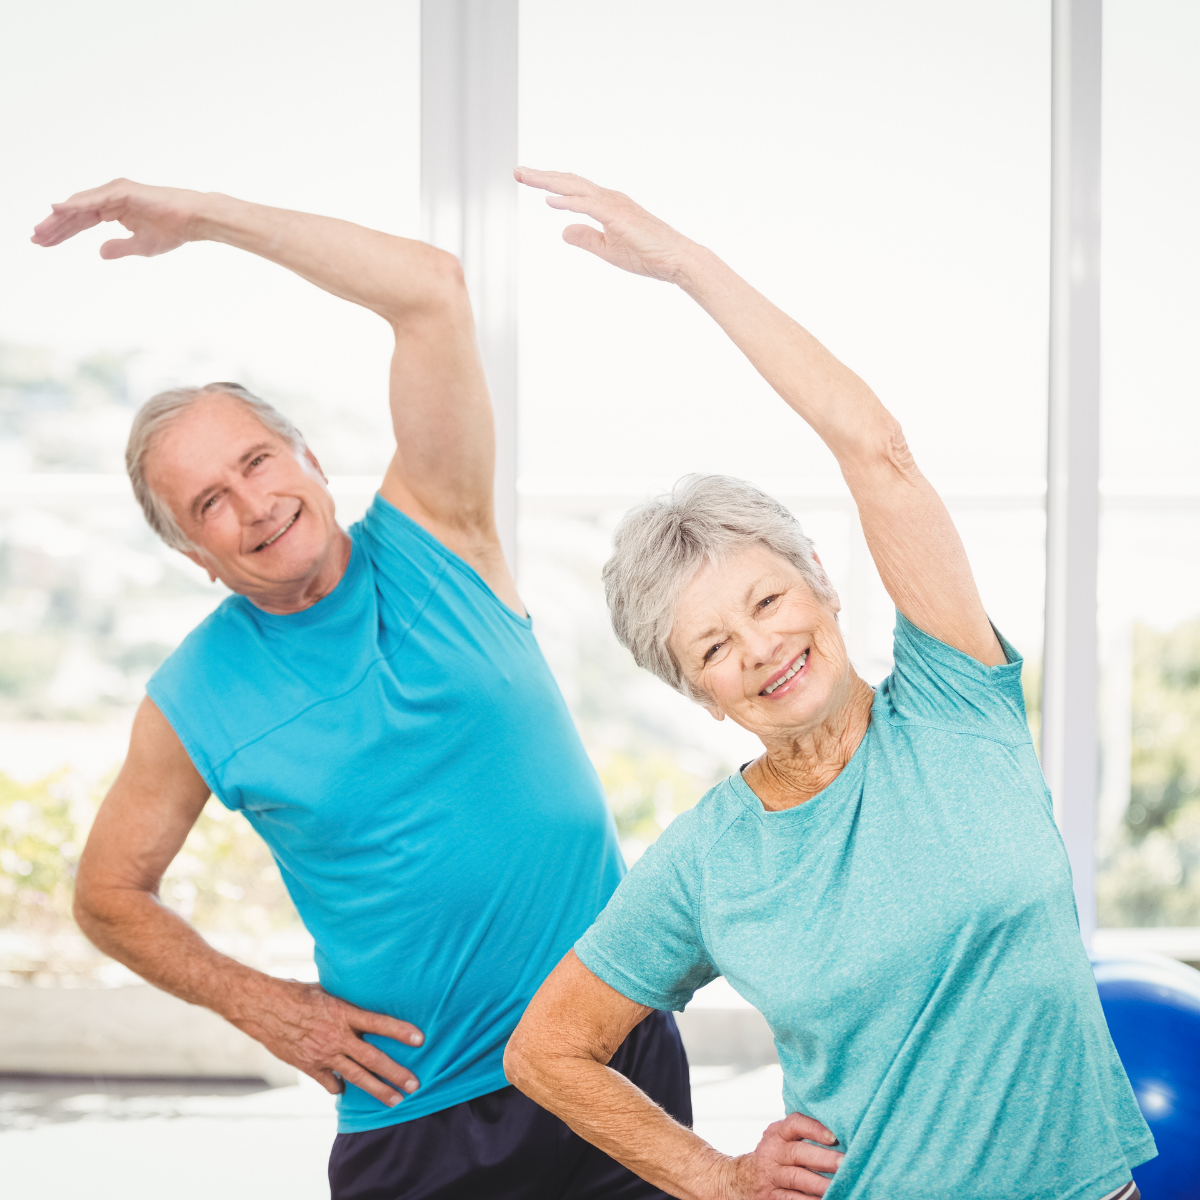 Keep bosies healthy while moving elderly parents out of their home